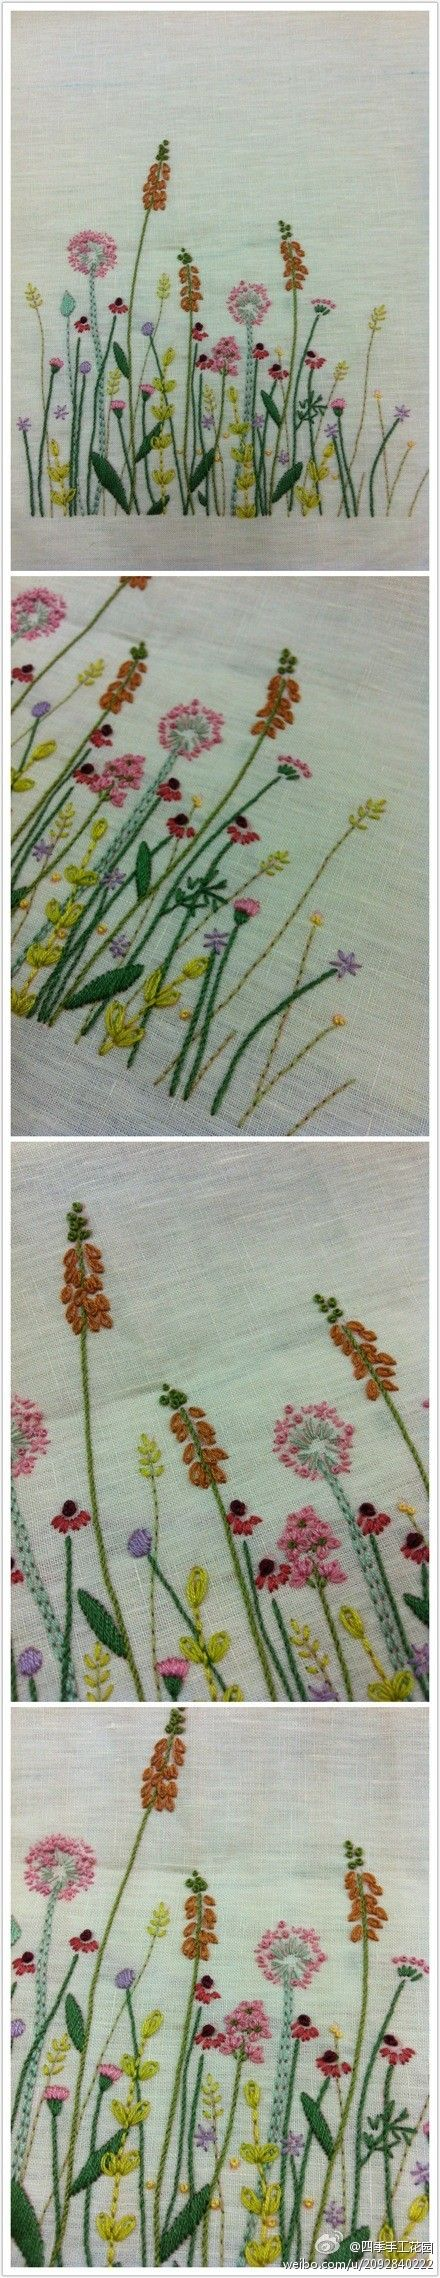 best Вышивка images on pinterest embroidery stitches and